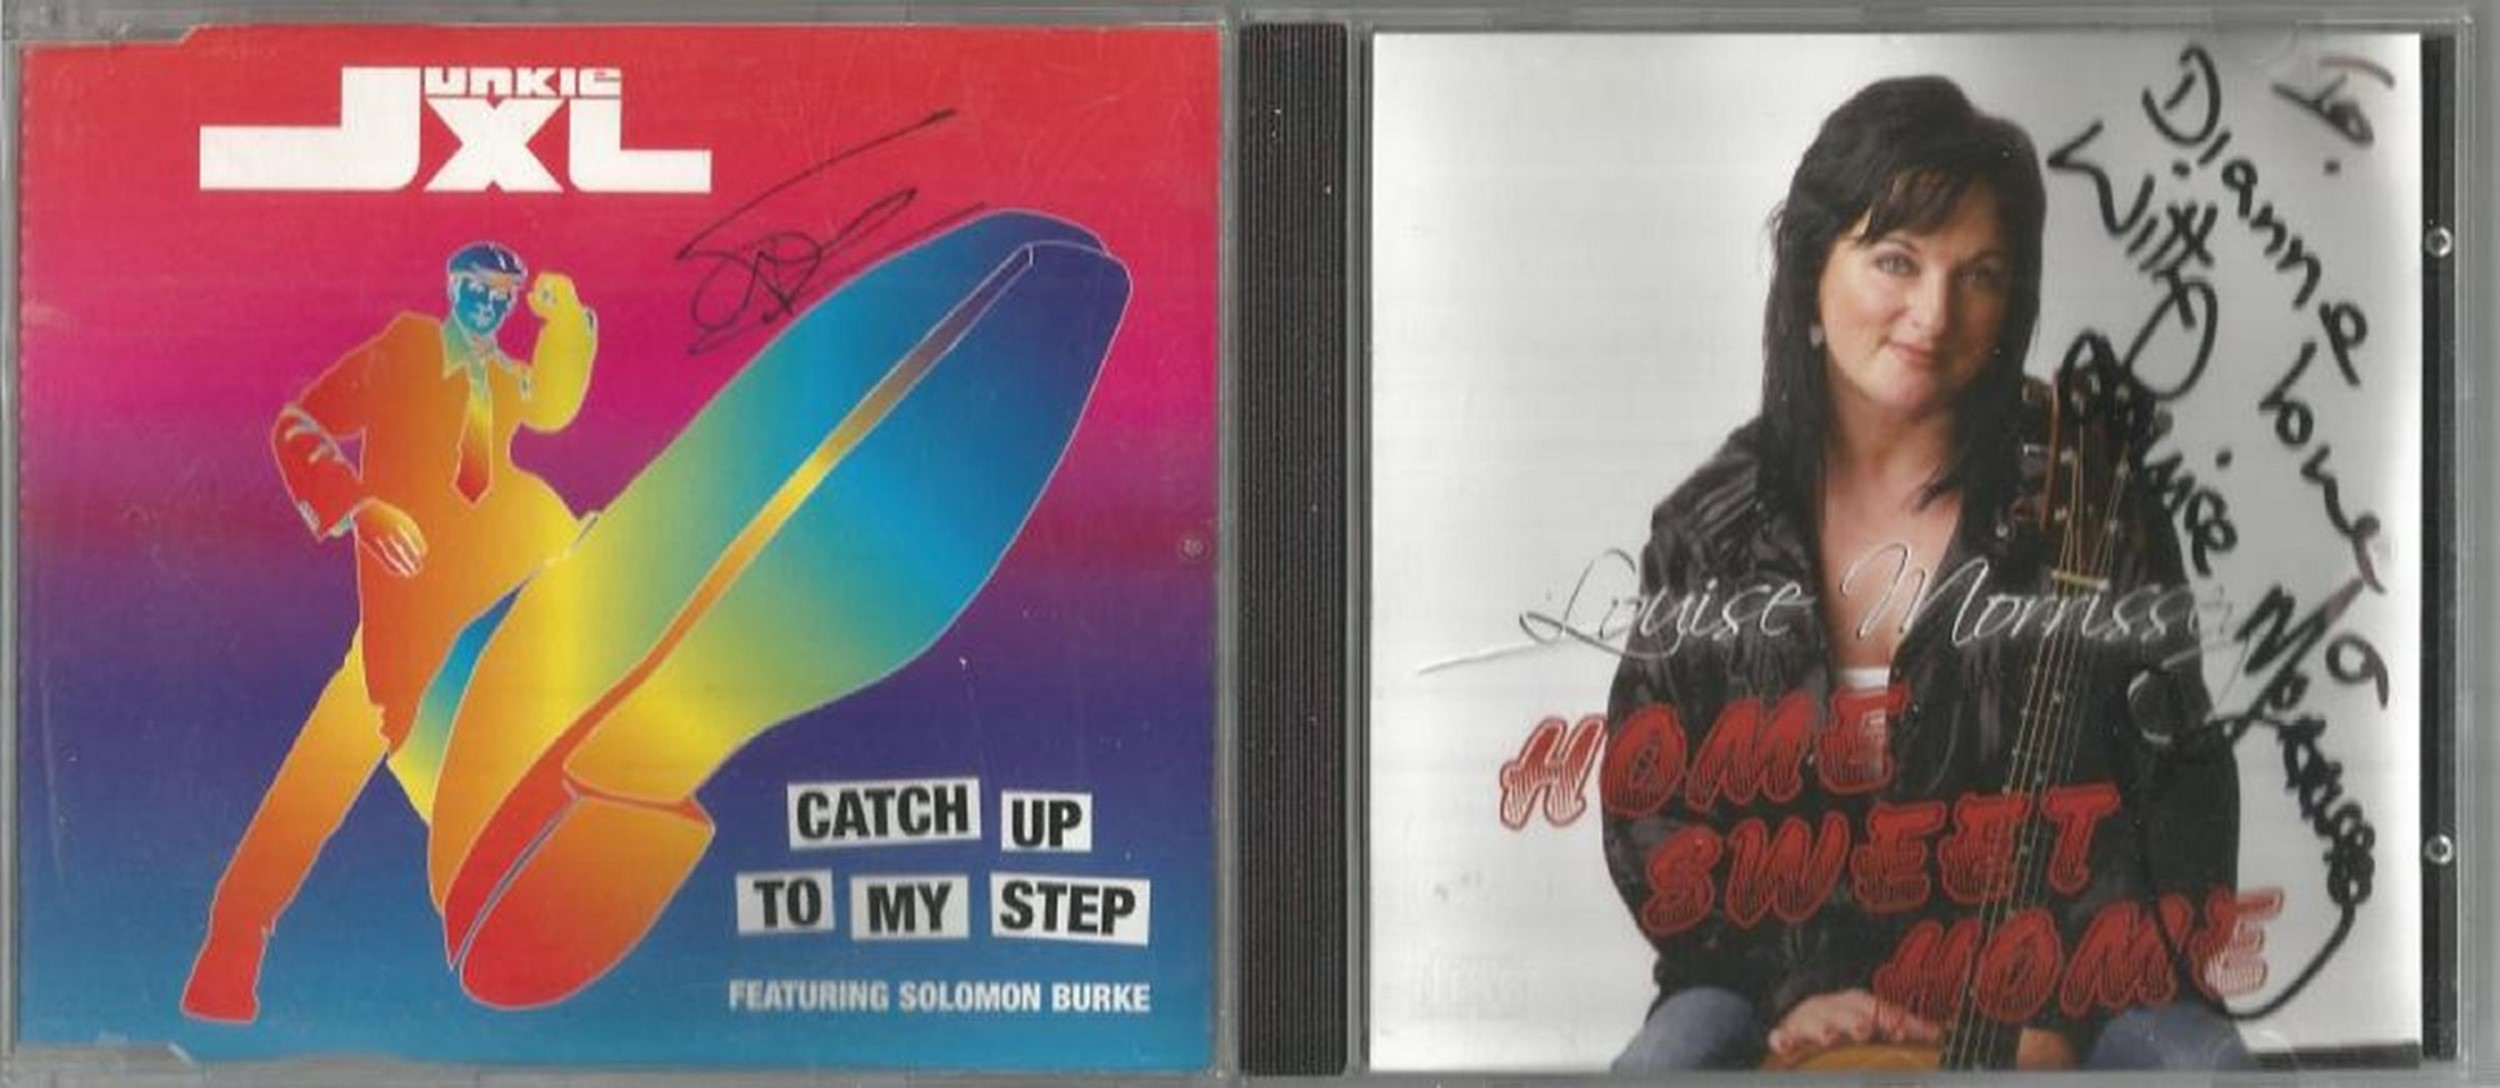 6 Signed CDs Including Emily Levy Lost and Found Disc Included, Junkie XL Catch up to my Step Disc